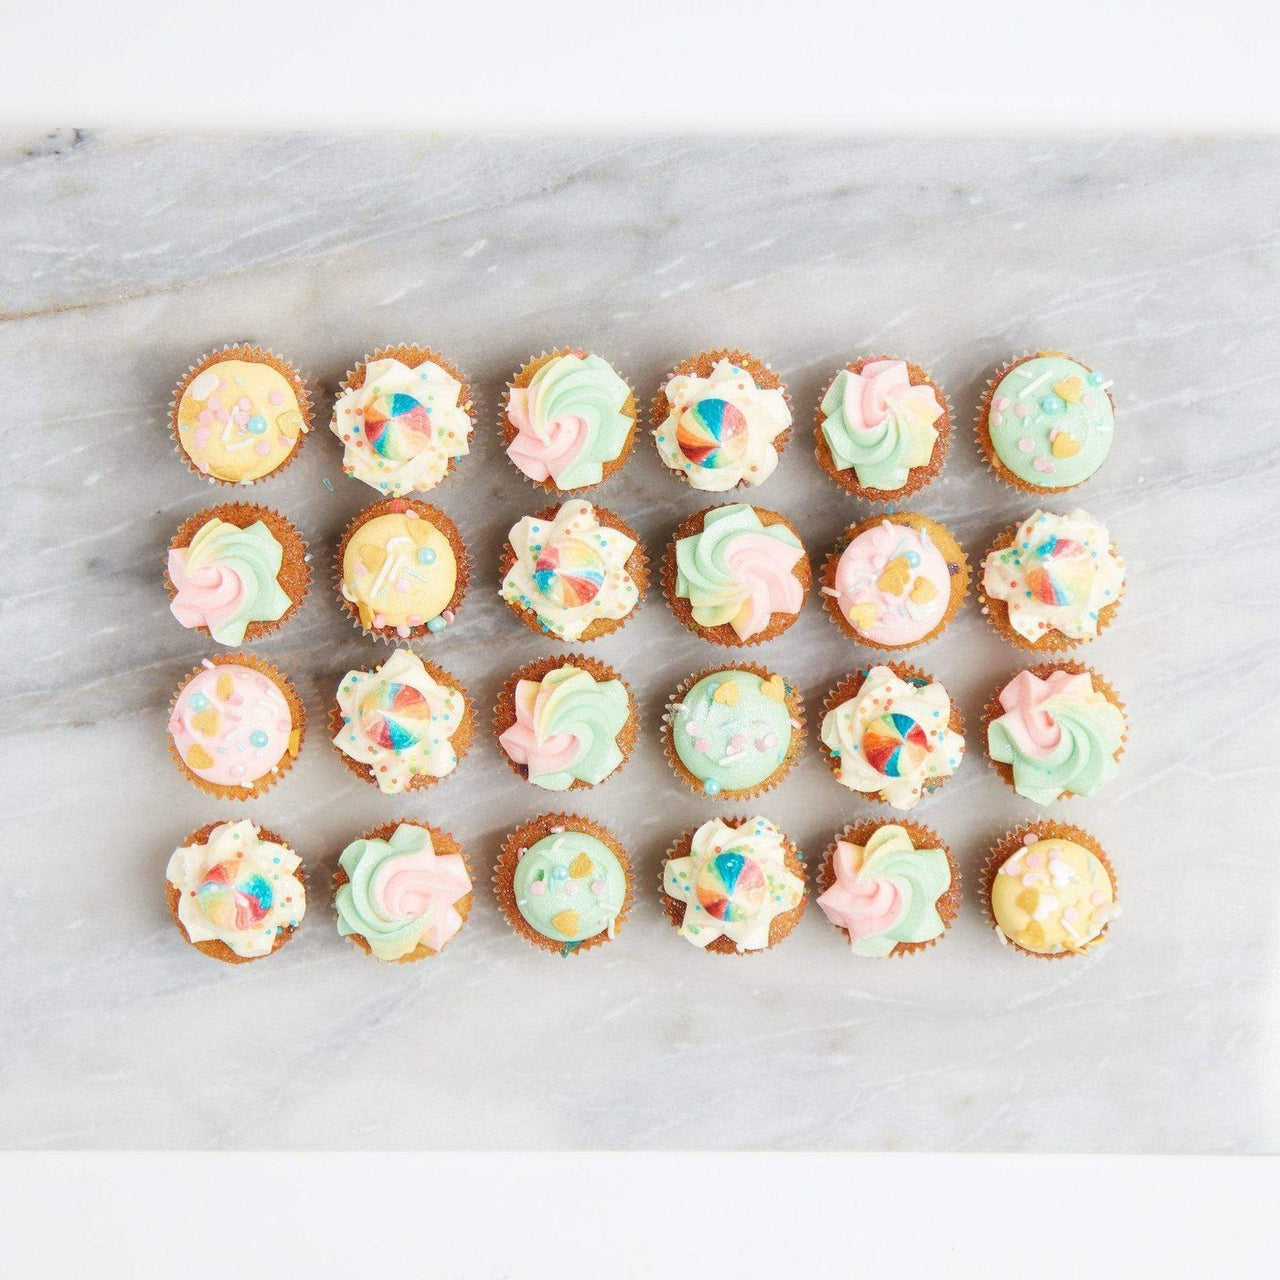 Full-On Unicorn Cupcakes